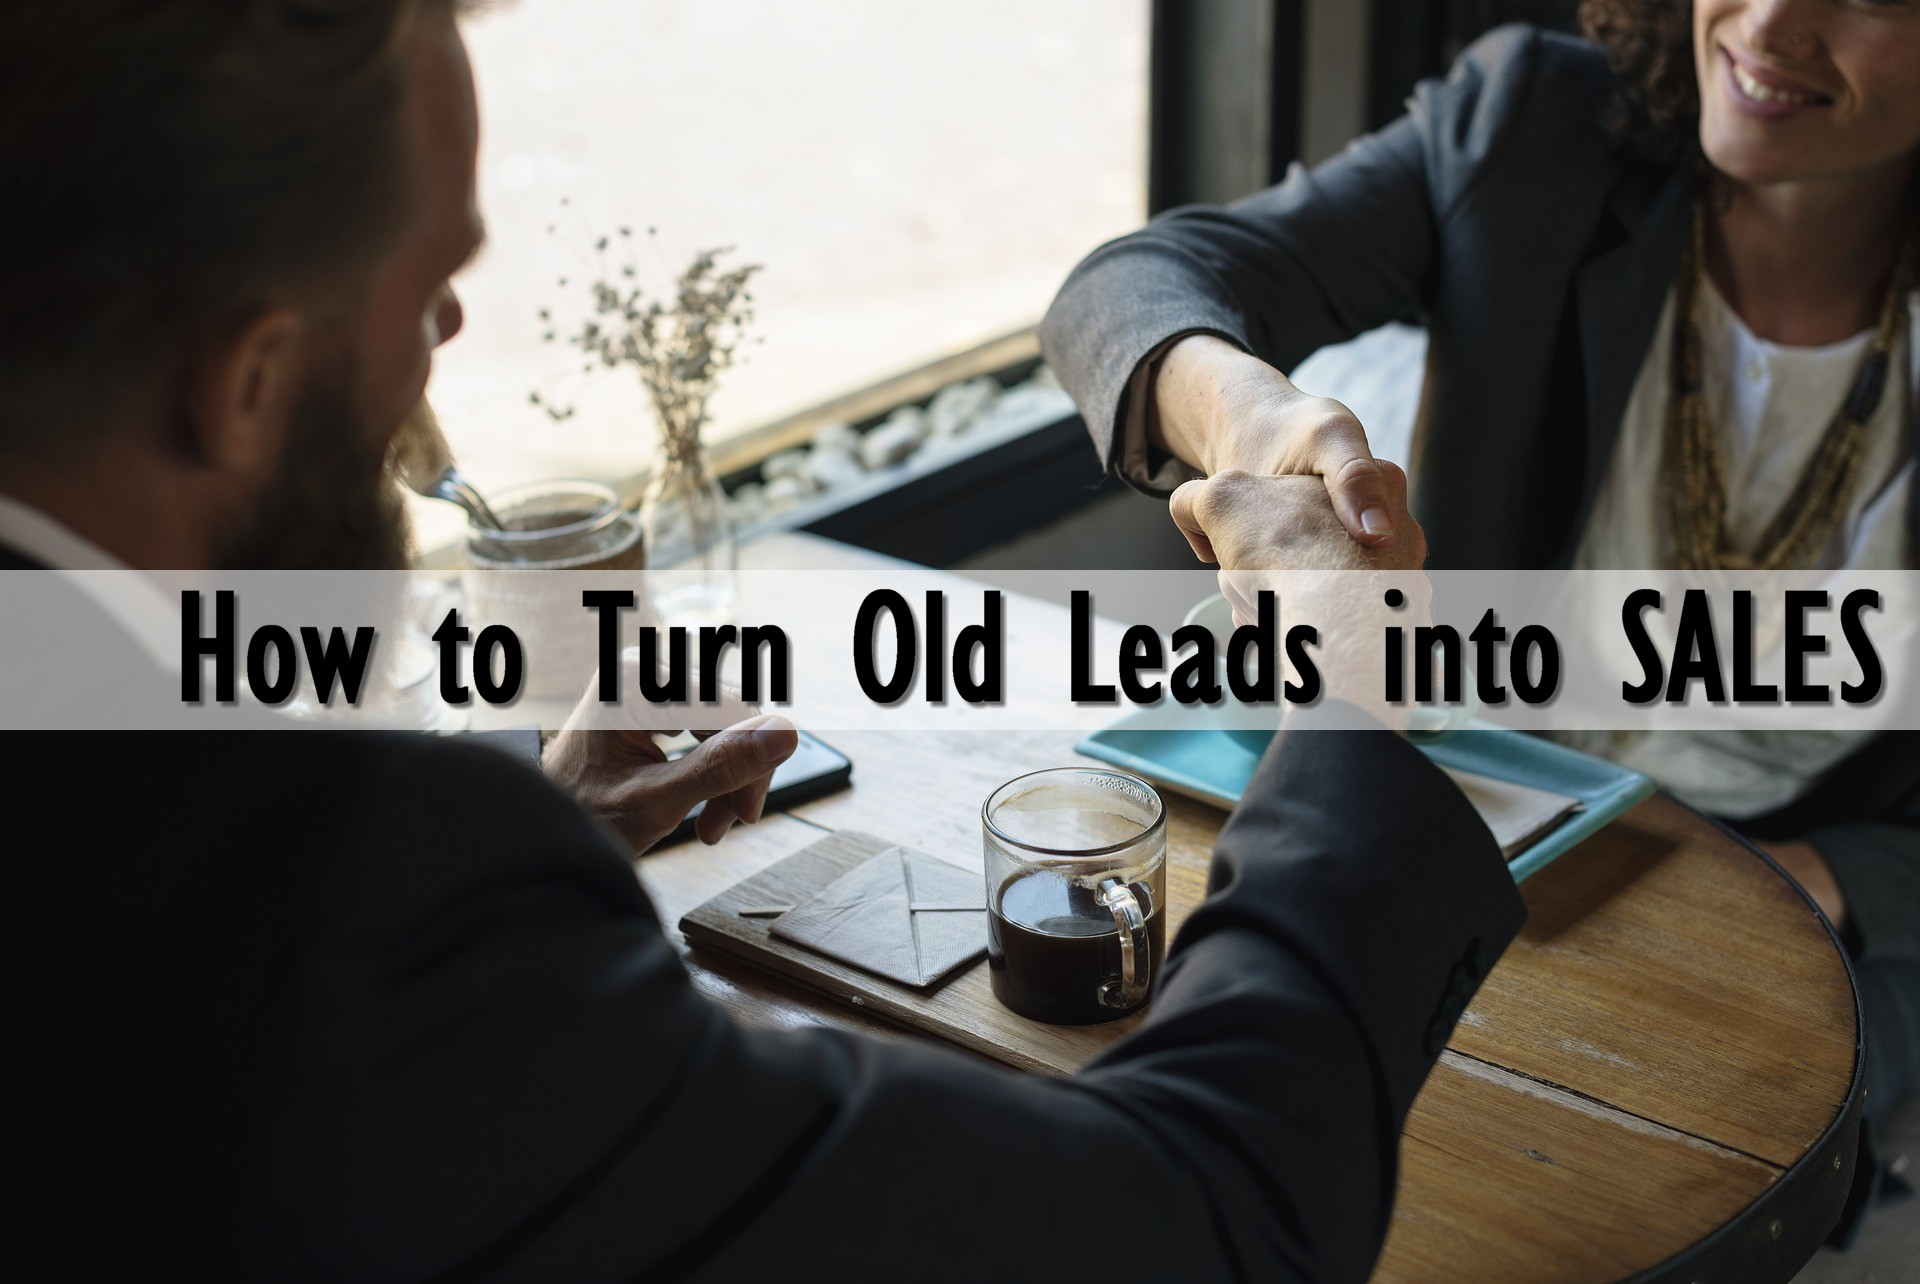 4 Easy Ways to Re-engage Your Old Real Estate Leads